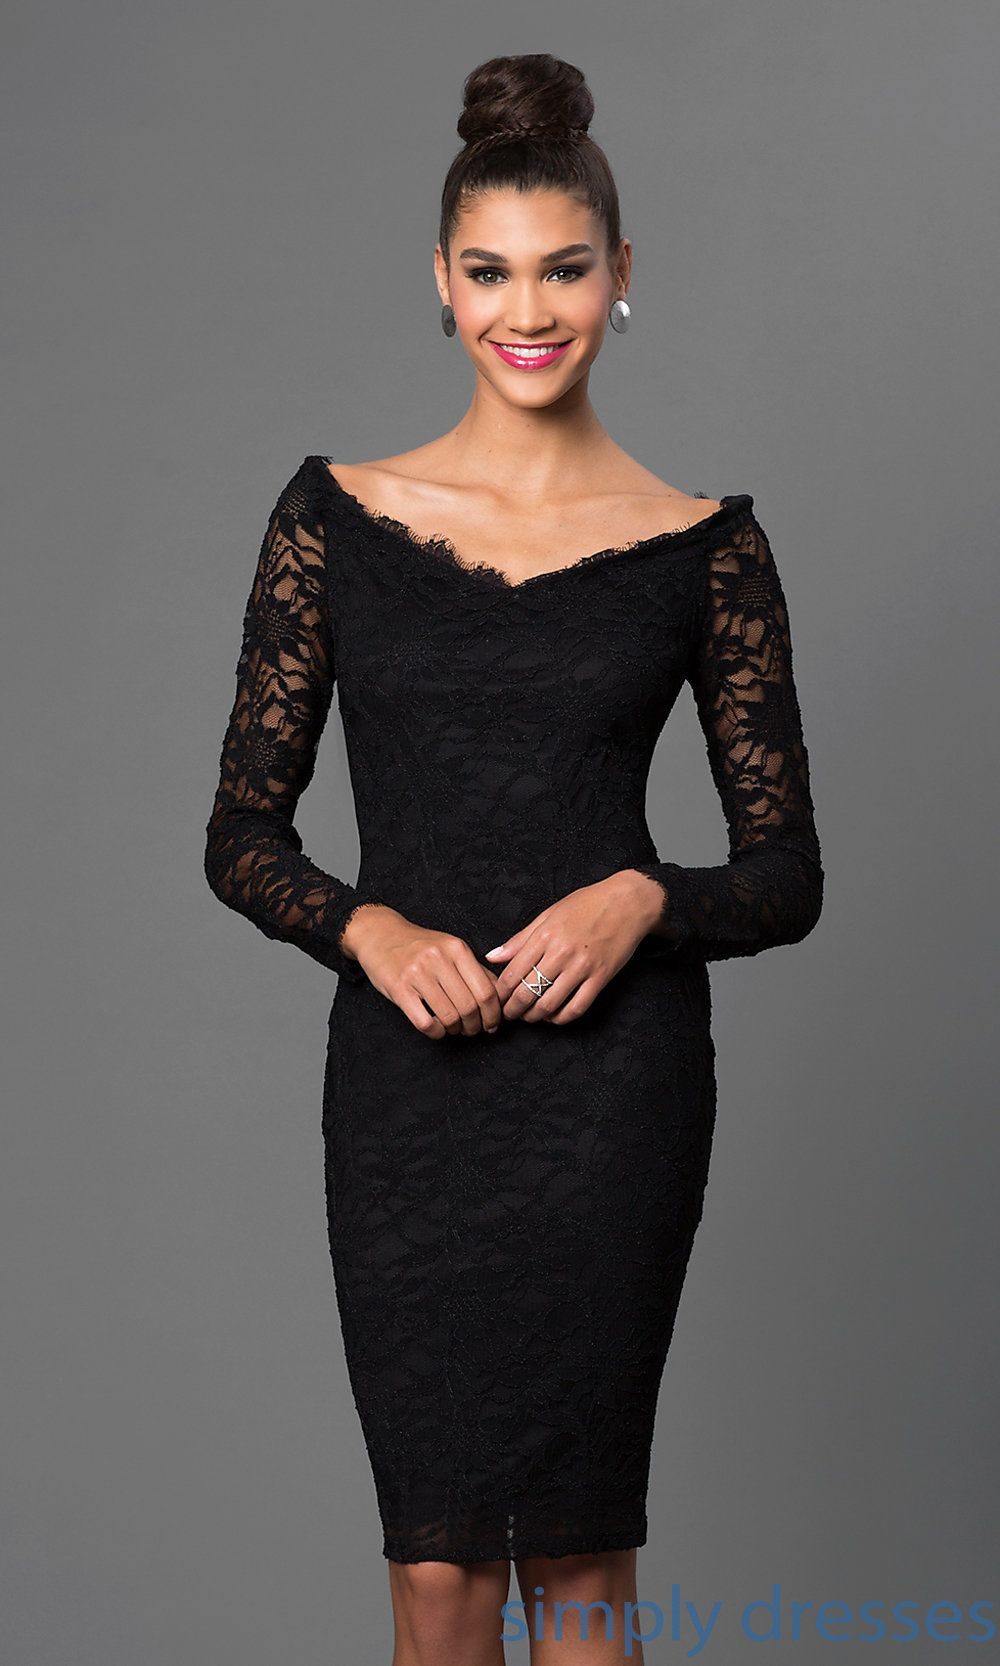 414c169fe1 Shop long sleeve black lace off shoulder dresses by Marina at  SimplyDresses. Knee length scalloped neckline cocktail dresses for holiday  celebrations.